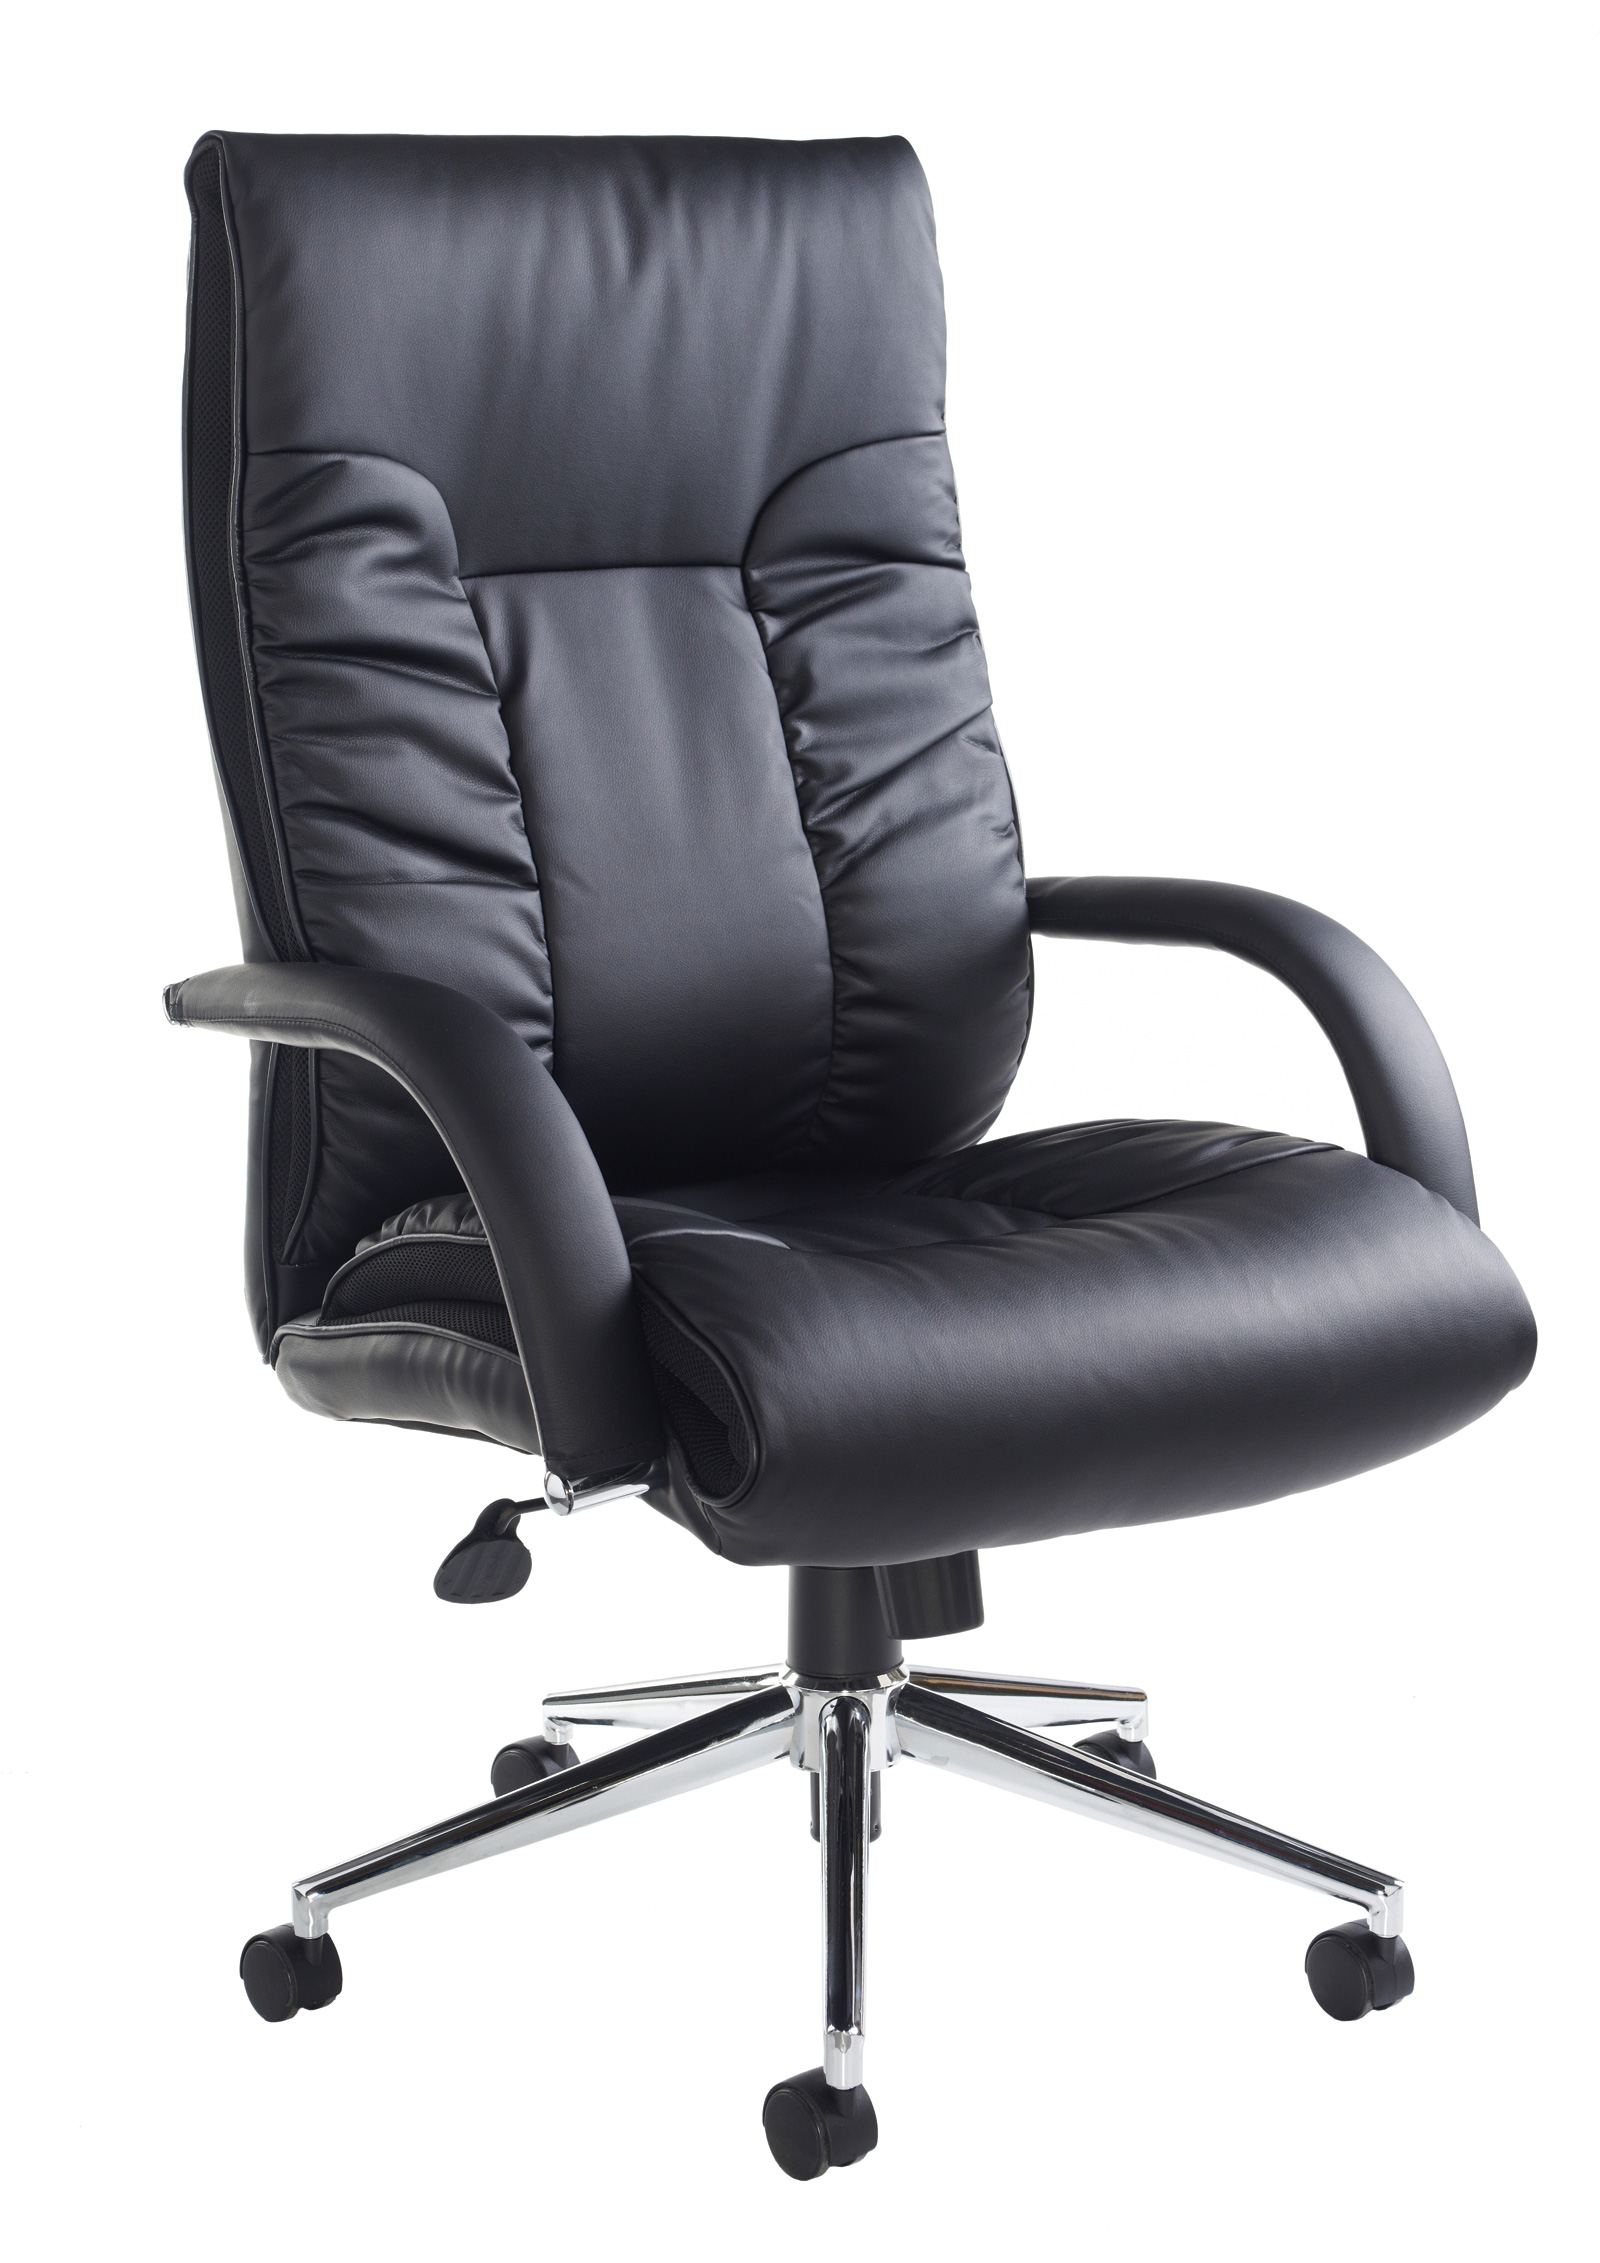 Derby high back executive chair - black